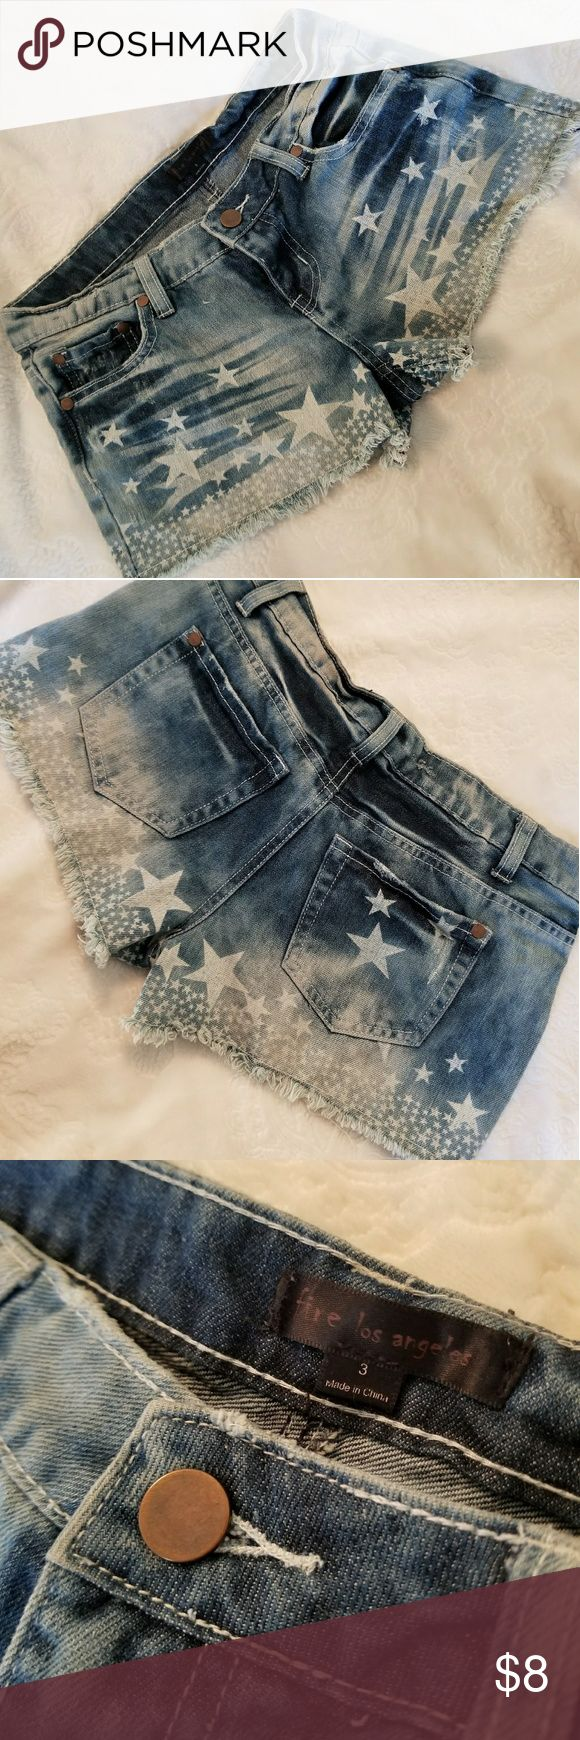 Faded Cutoff Jean Shorts Faded Cutoff Jean Shorts (says size 3, however fit like a 2) Perfect for 4th of July!🎆 Fire Los Angeles Shorts Jean Shorts